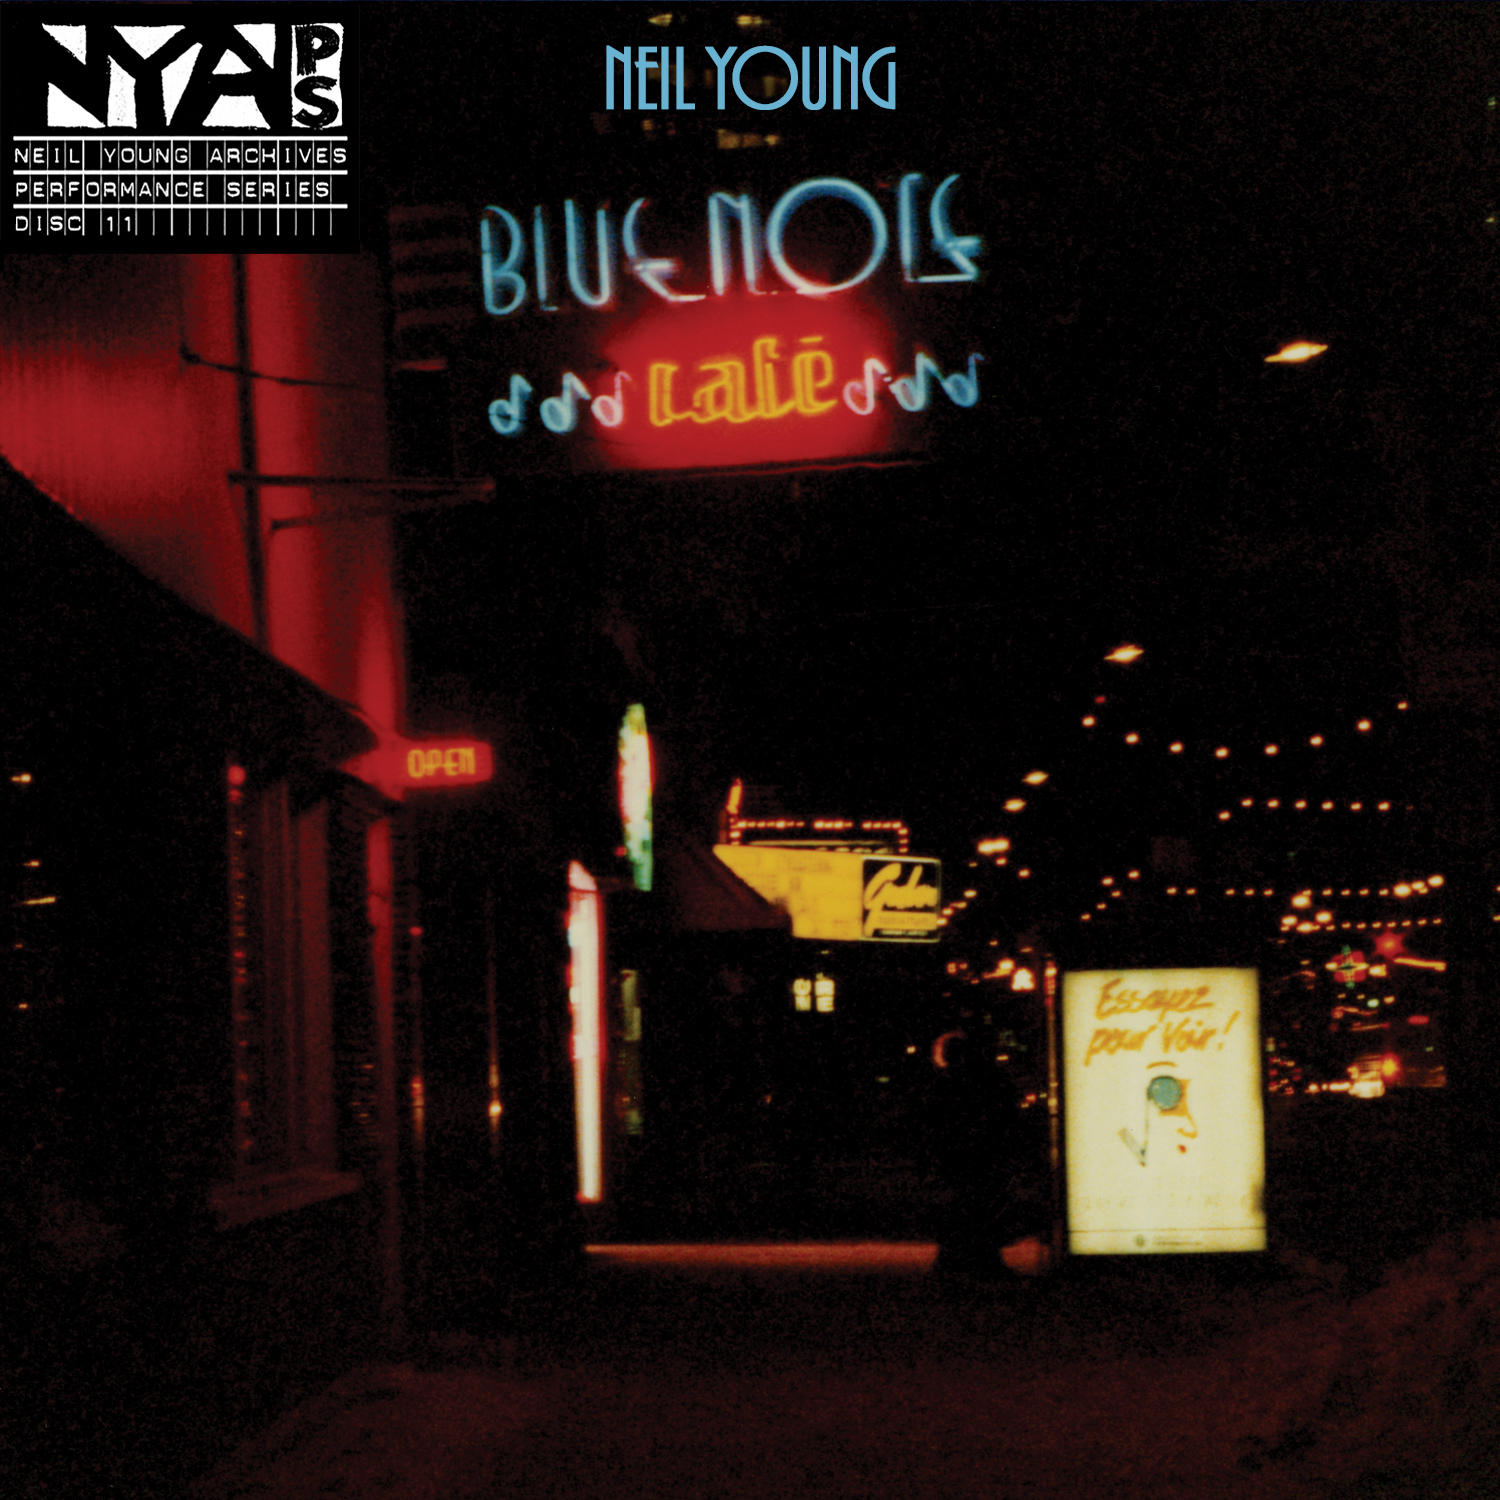 Neil Young Blue Note Cafe CD cover